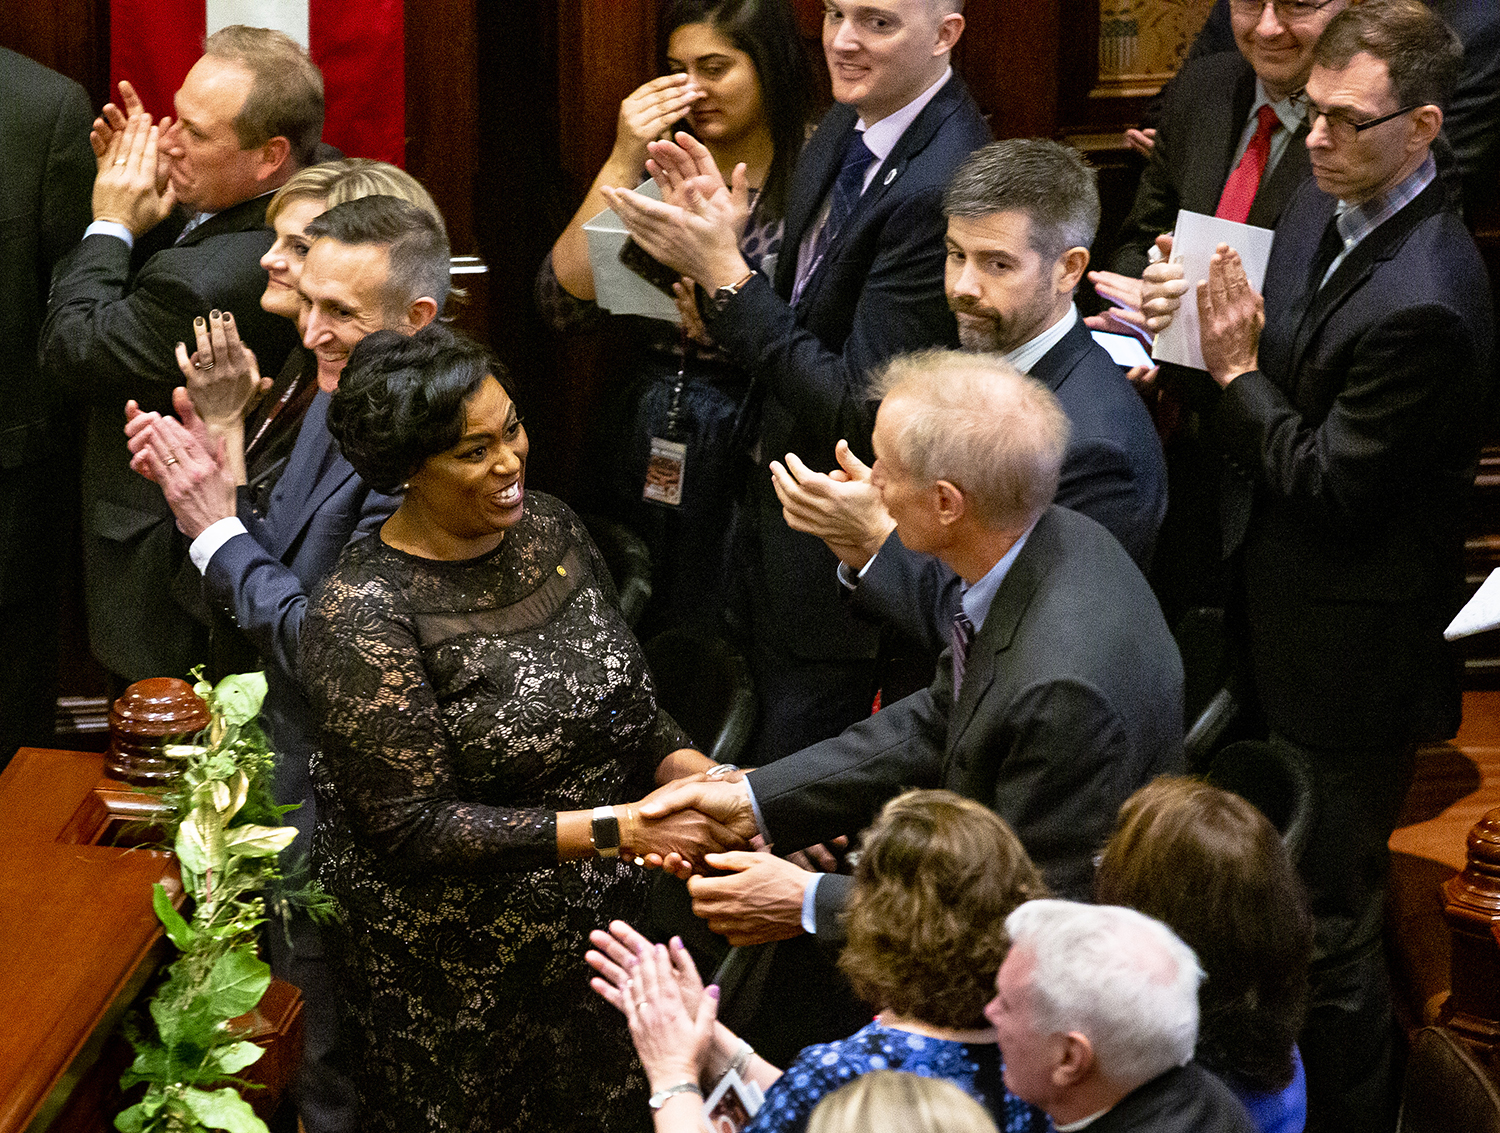 Tiffany Matthews greets Gov. Bruce Rauner after she presented a musical selection at the conclusion of the inauguration of the Illinois State Senate of the 101st General Assembly Wednesday, Jan. 9, 2019 at the Capitol in Springfield, Ill. [Rich Saal/The State Journal-Register]